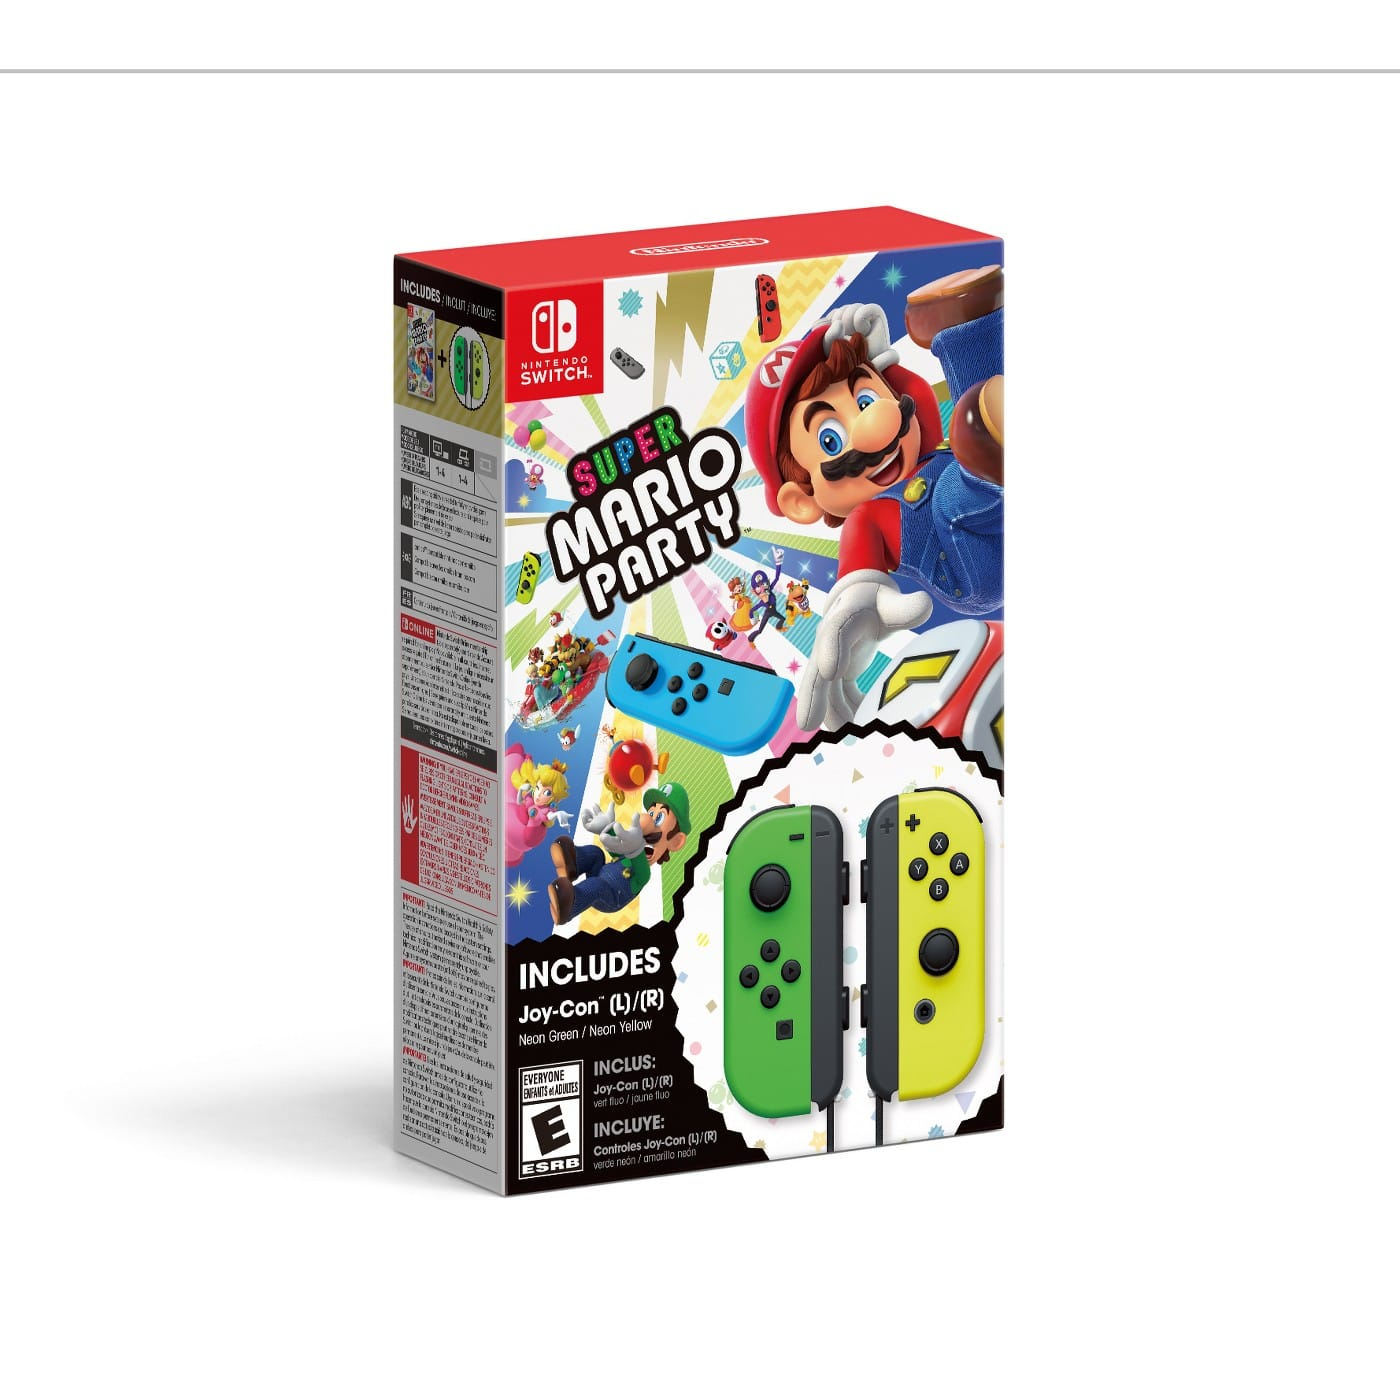 Super Mario Party with Neon Green / Neon Yellow Joy-Con Set - Nintendo Switch $99.99 FS at target and walmart